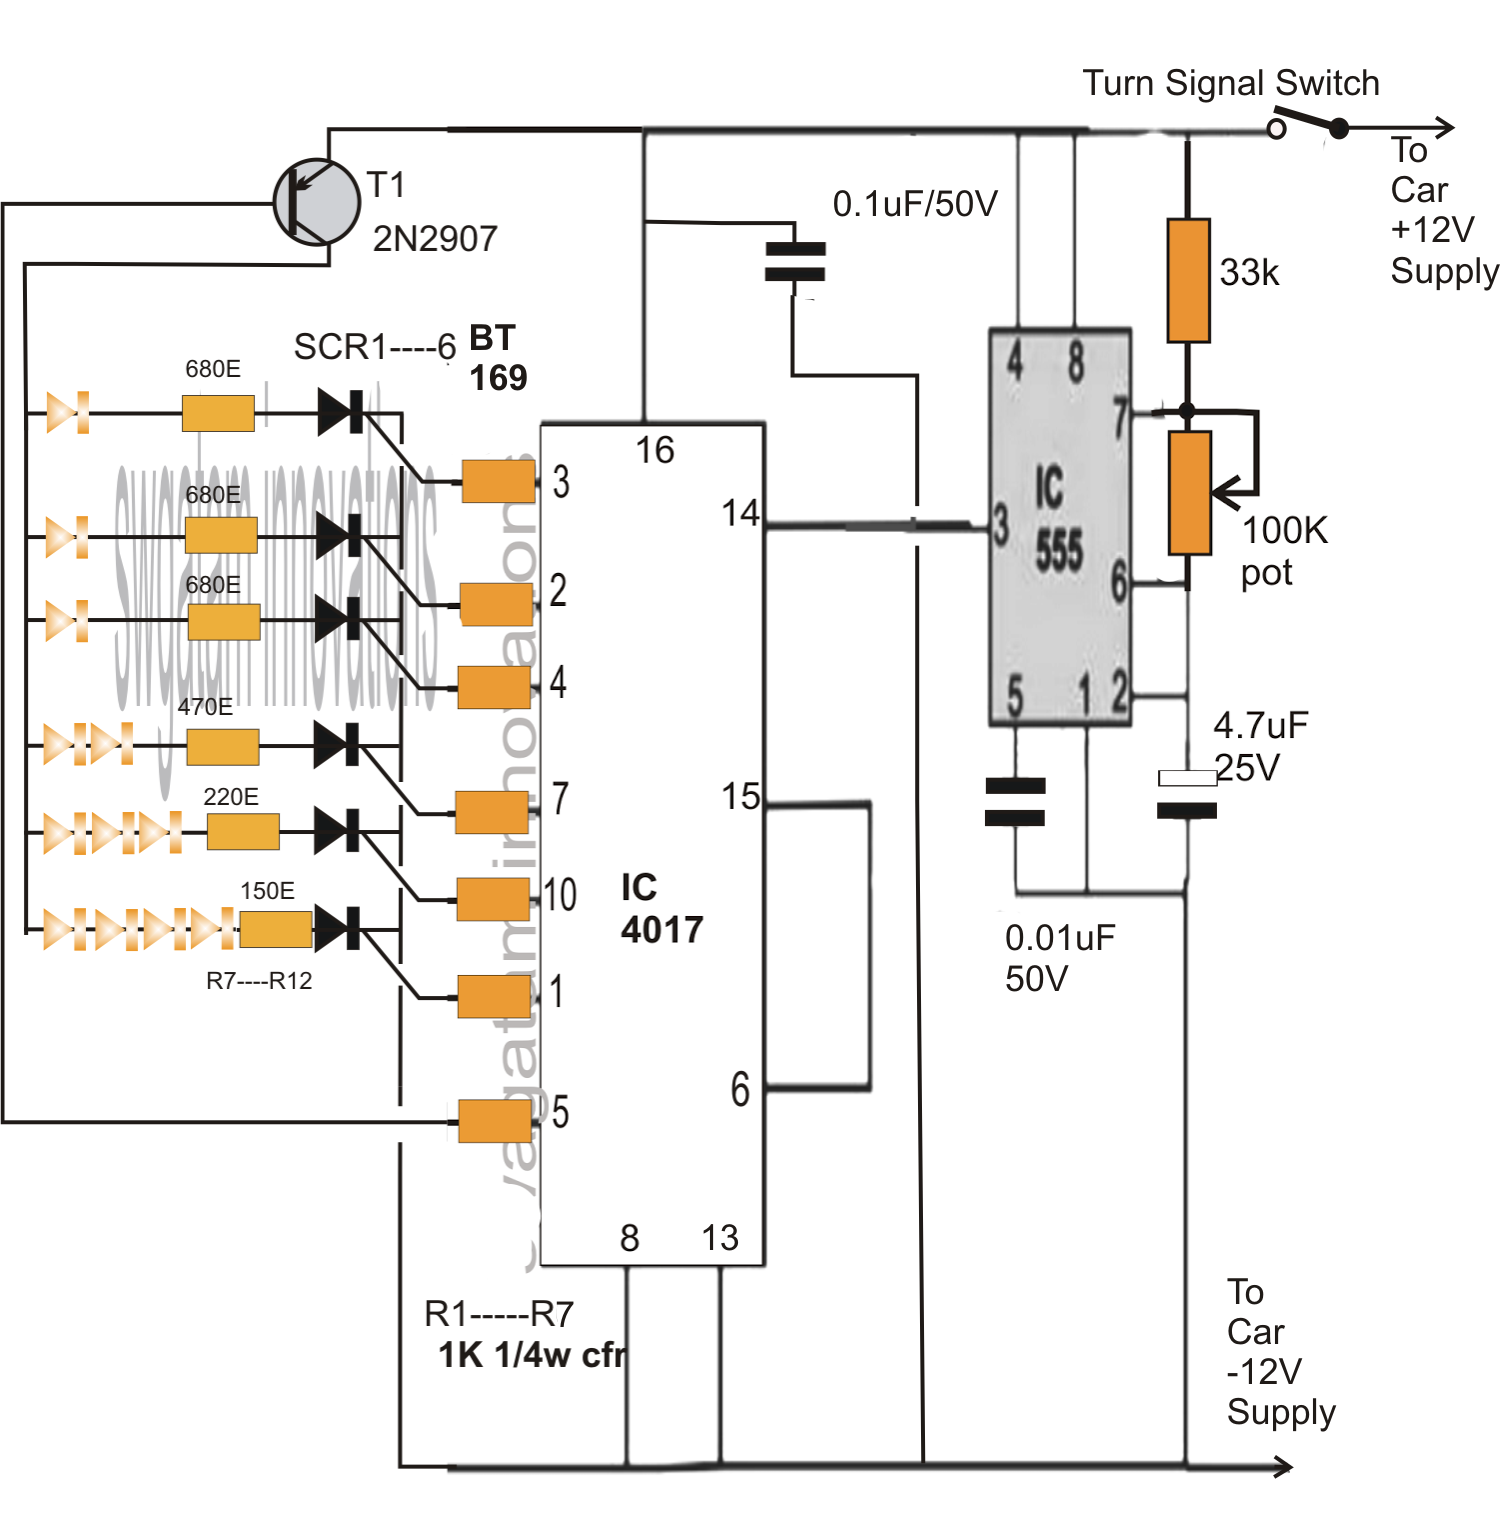 medium resolution of sequential bar graph turn light indicator circuit for car electronic turn signal flasher circuit turnsignal flasher schematic symbol